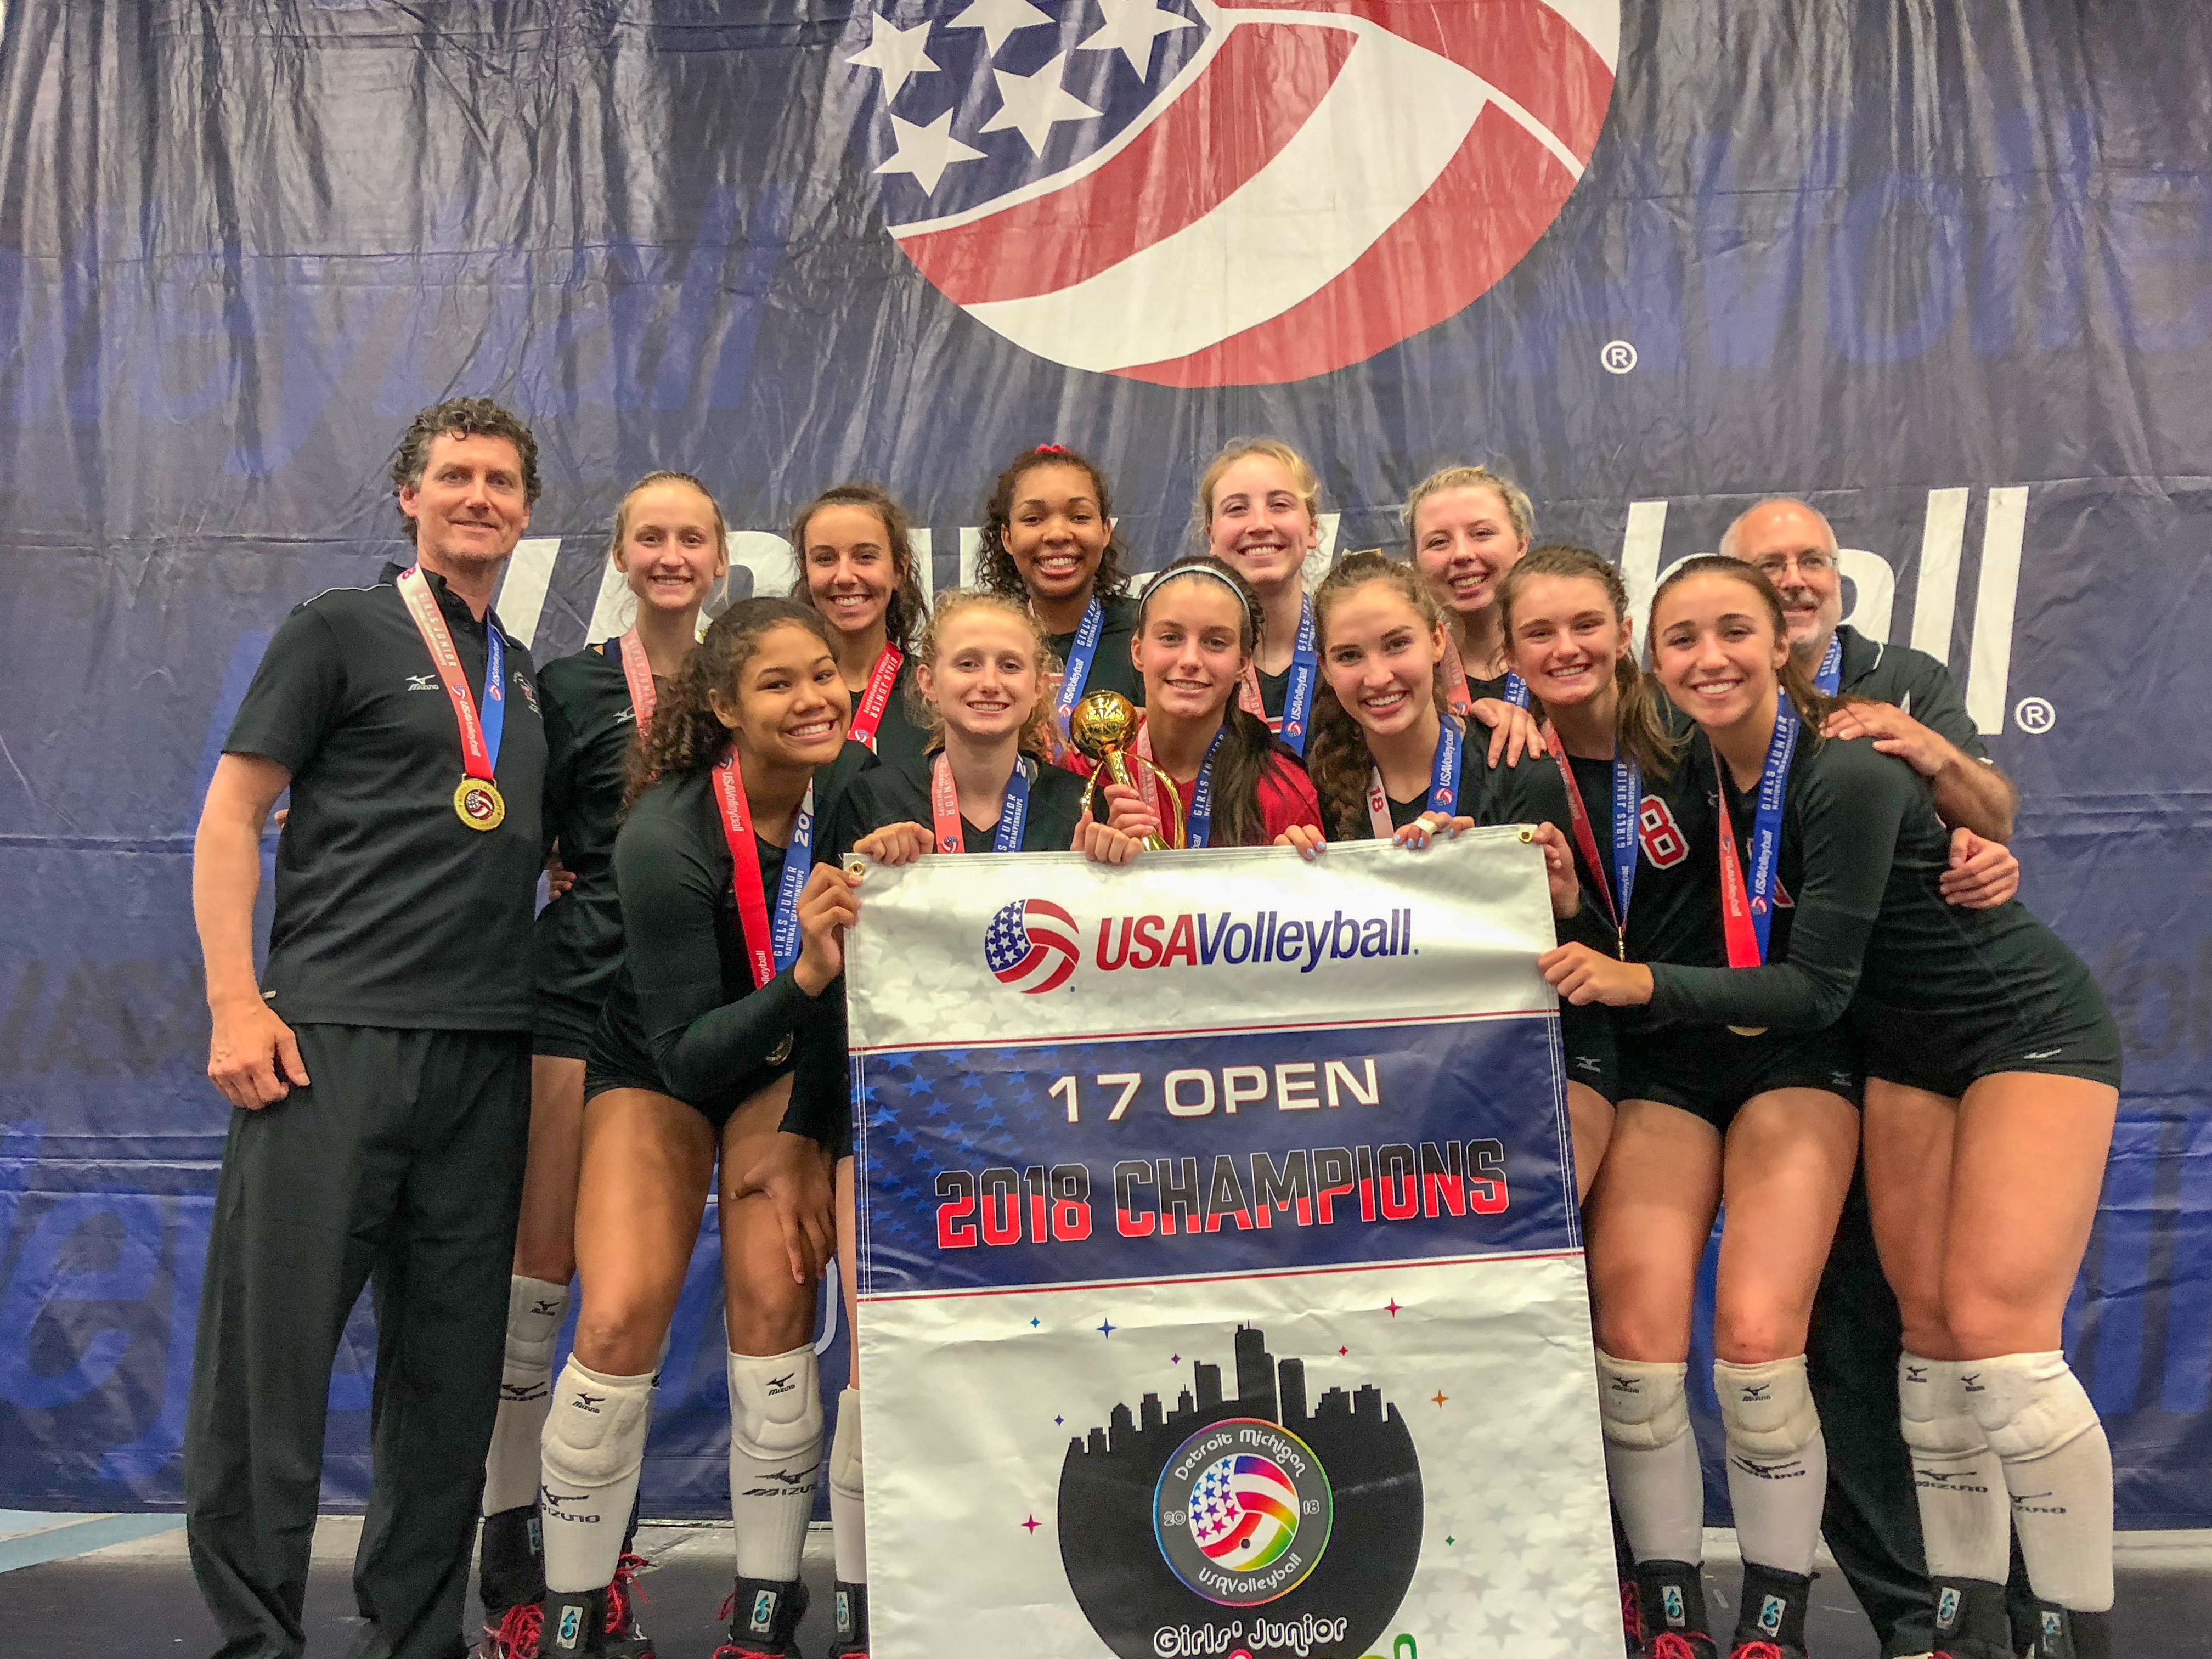 fb58514cf2 ... Division at the 2018 USA Volleyball Girls' Junior National  Championships! Congrats to Kyndra Hansen and Mari Hinkle on being named All  Tournament plus a ...